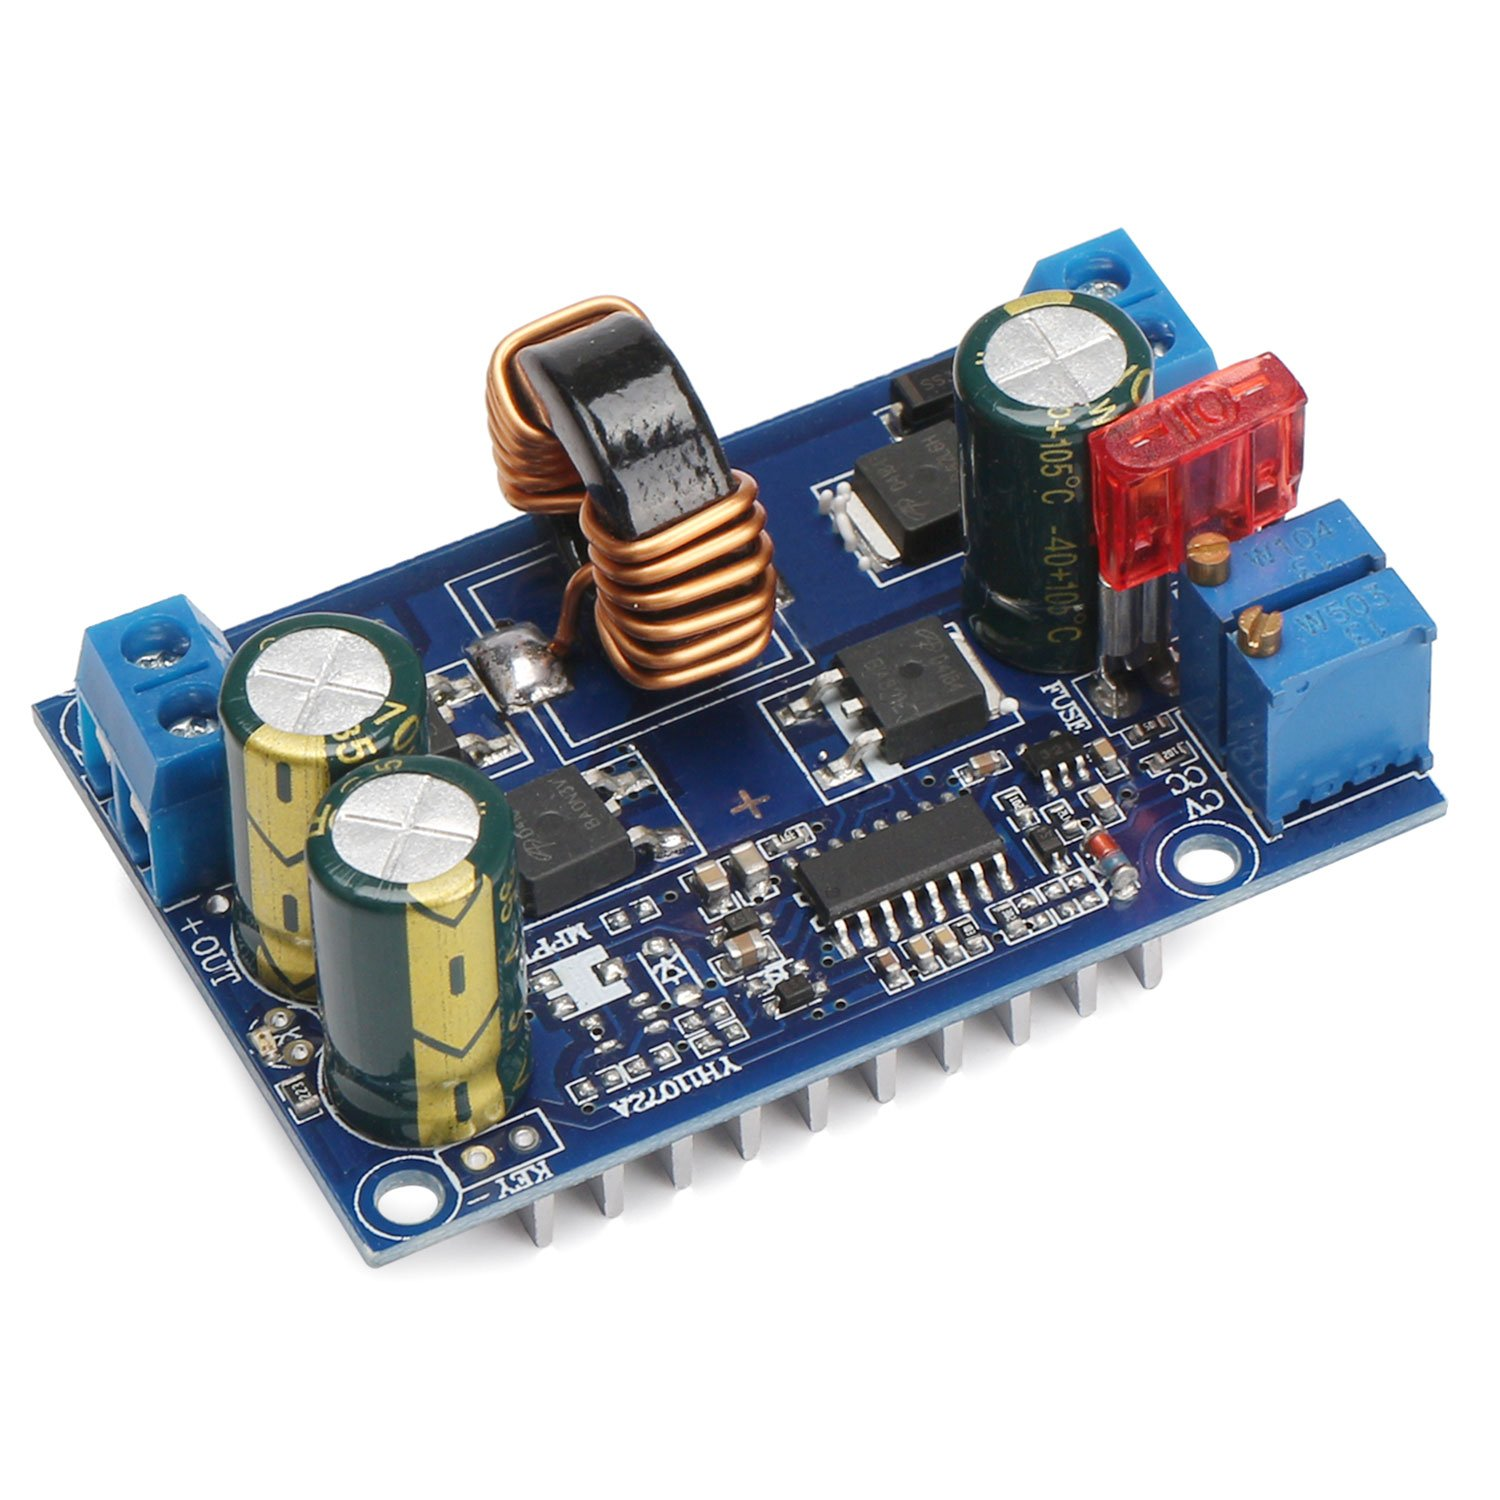 Drok Dc Automatic Boost Buck Converter Module 60w Of A With External Mosfet For Short Circuit Protection Constant Voltage Current Car Regulator Dc5 32v To 125 20v Industrial Scientific